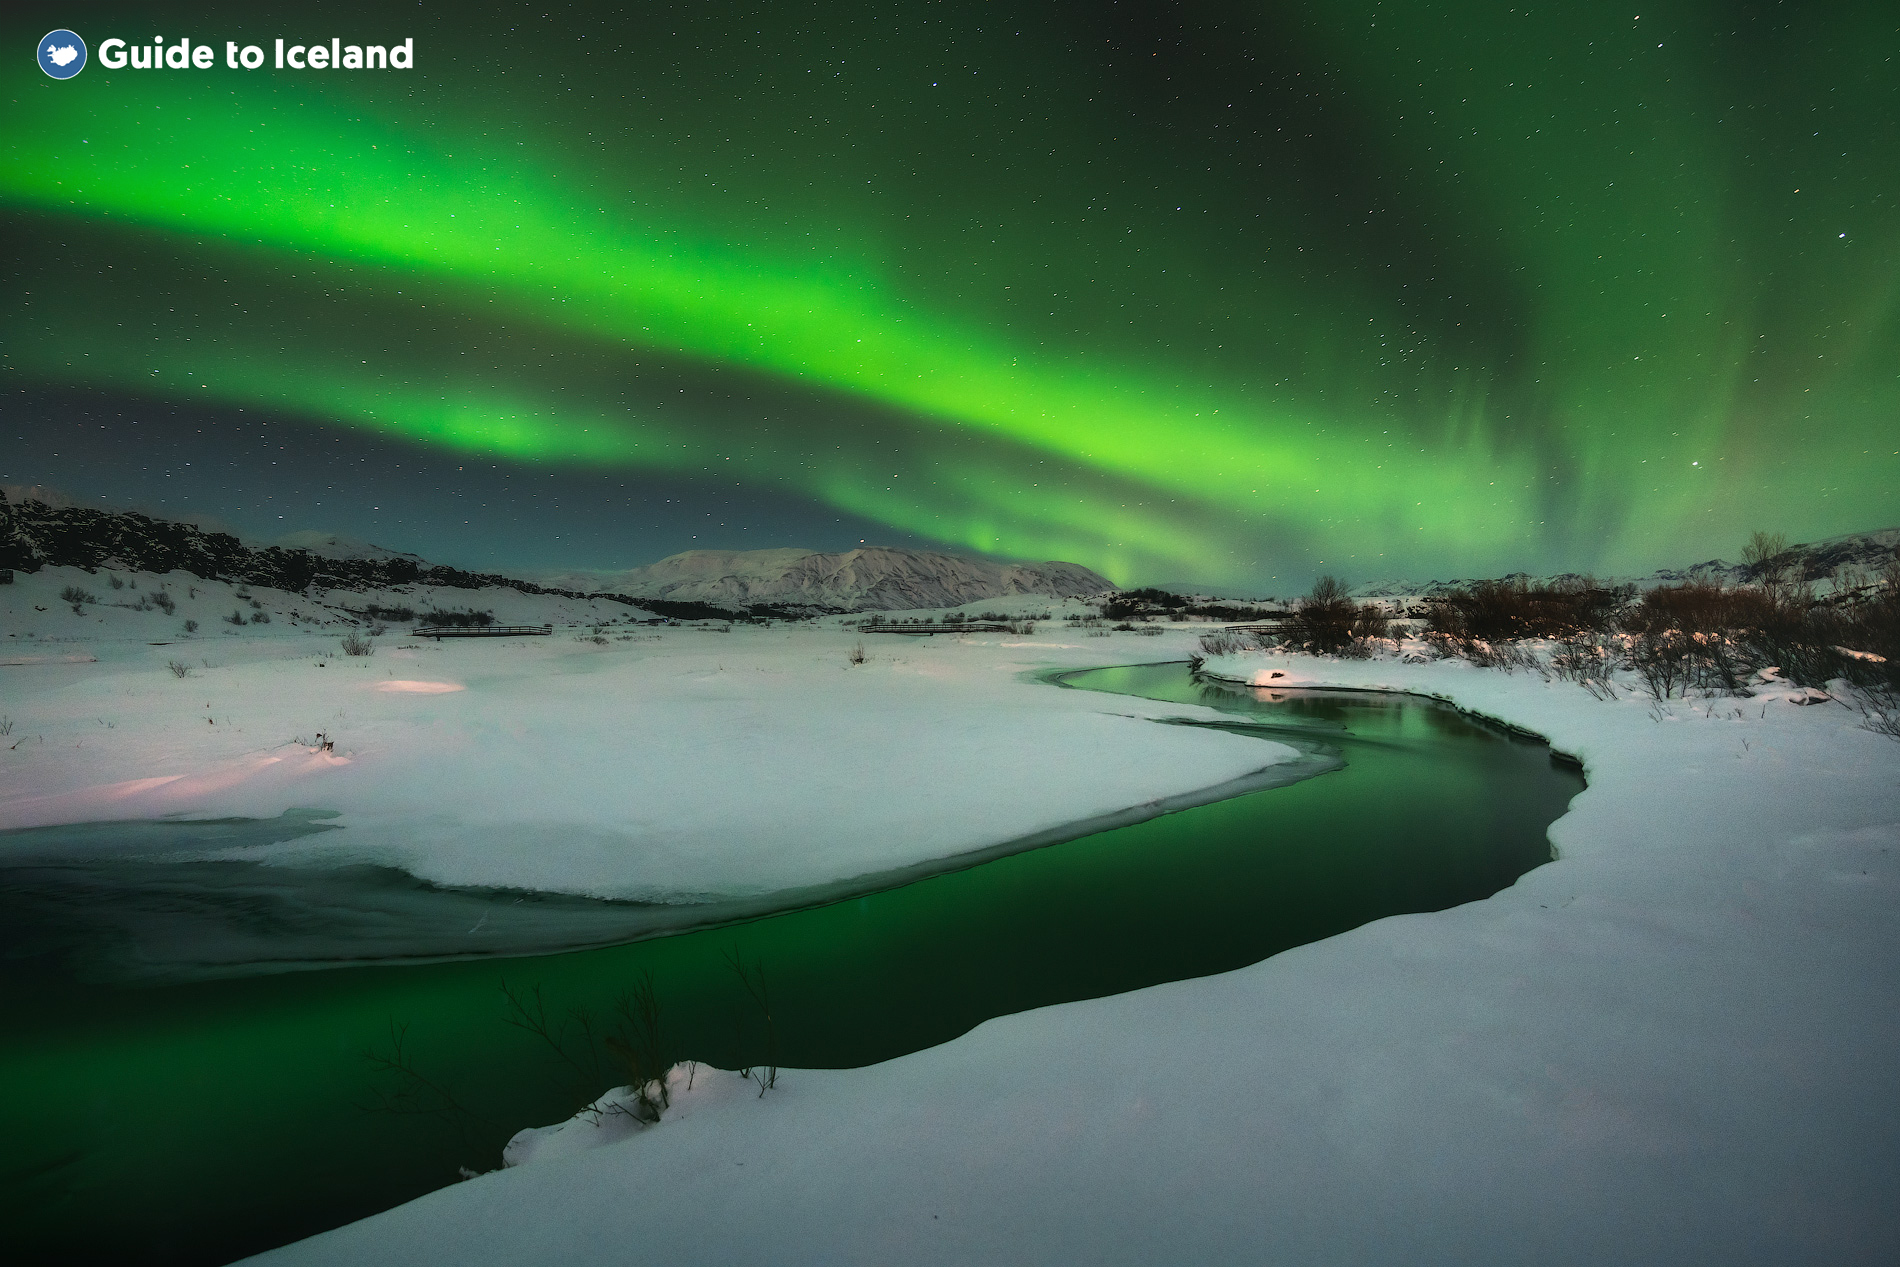 A magical dance of the aurora borealis occurs over a snowy landscape in Iceland.